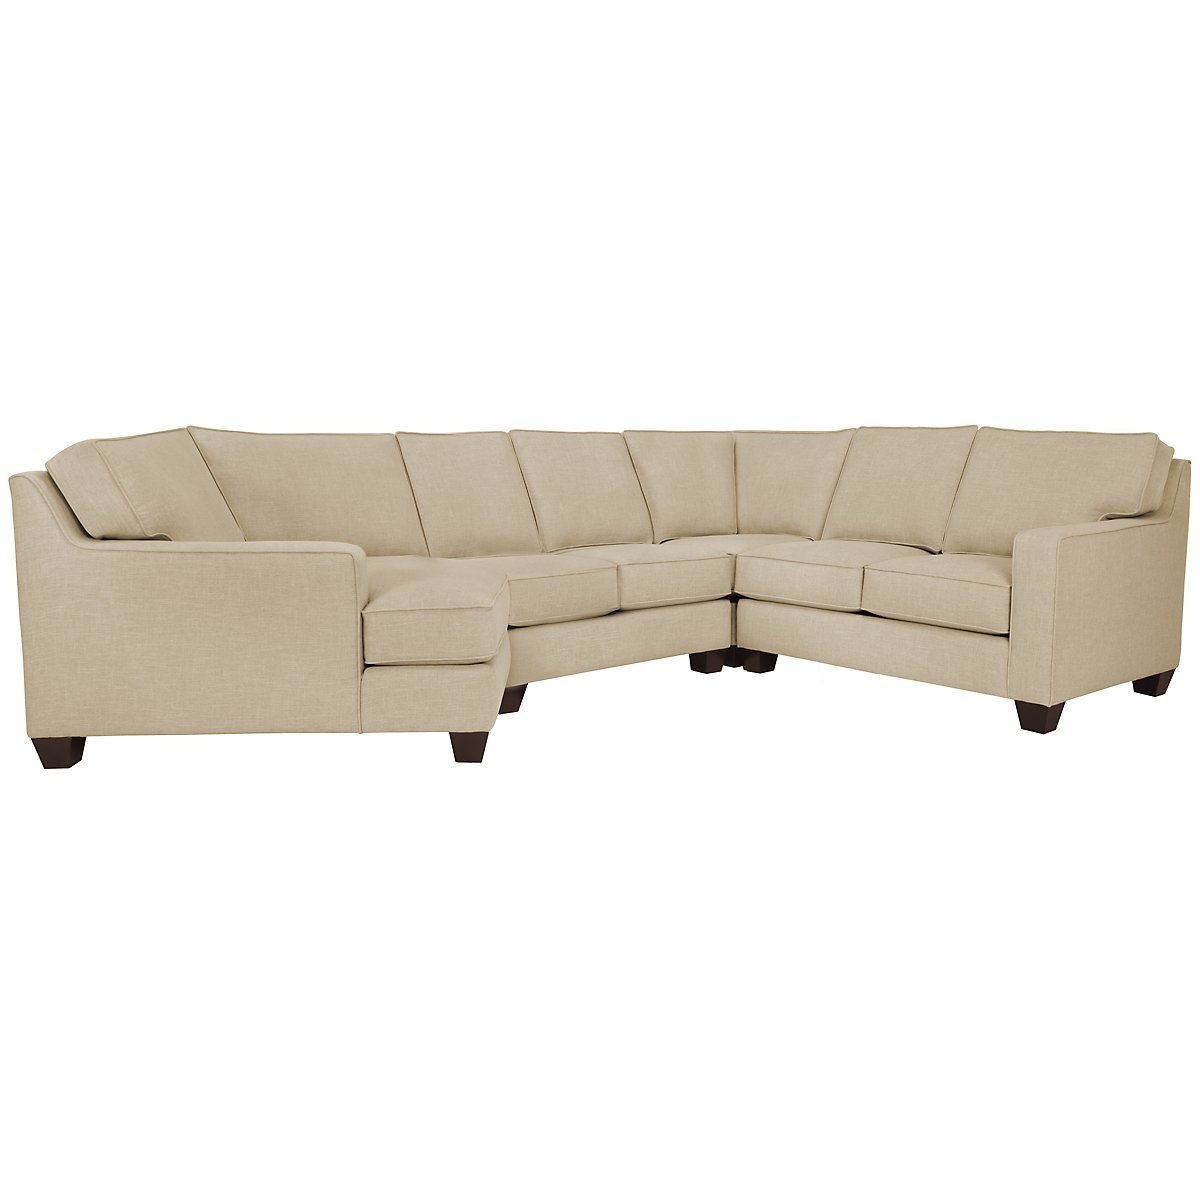 City furniture york beige fabric small left cuddler sectional for Small sectional sofa with cuddler